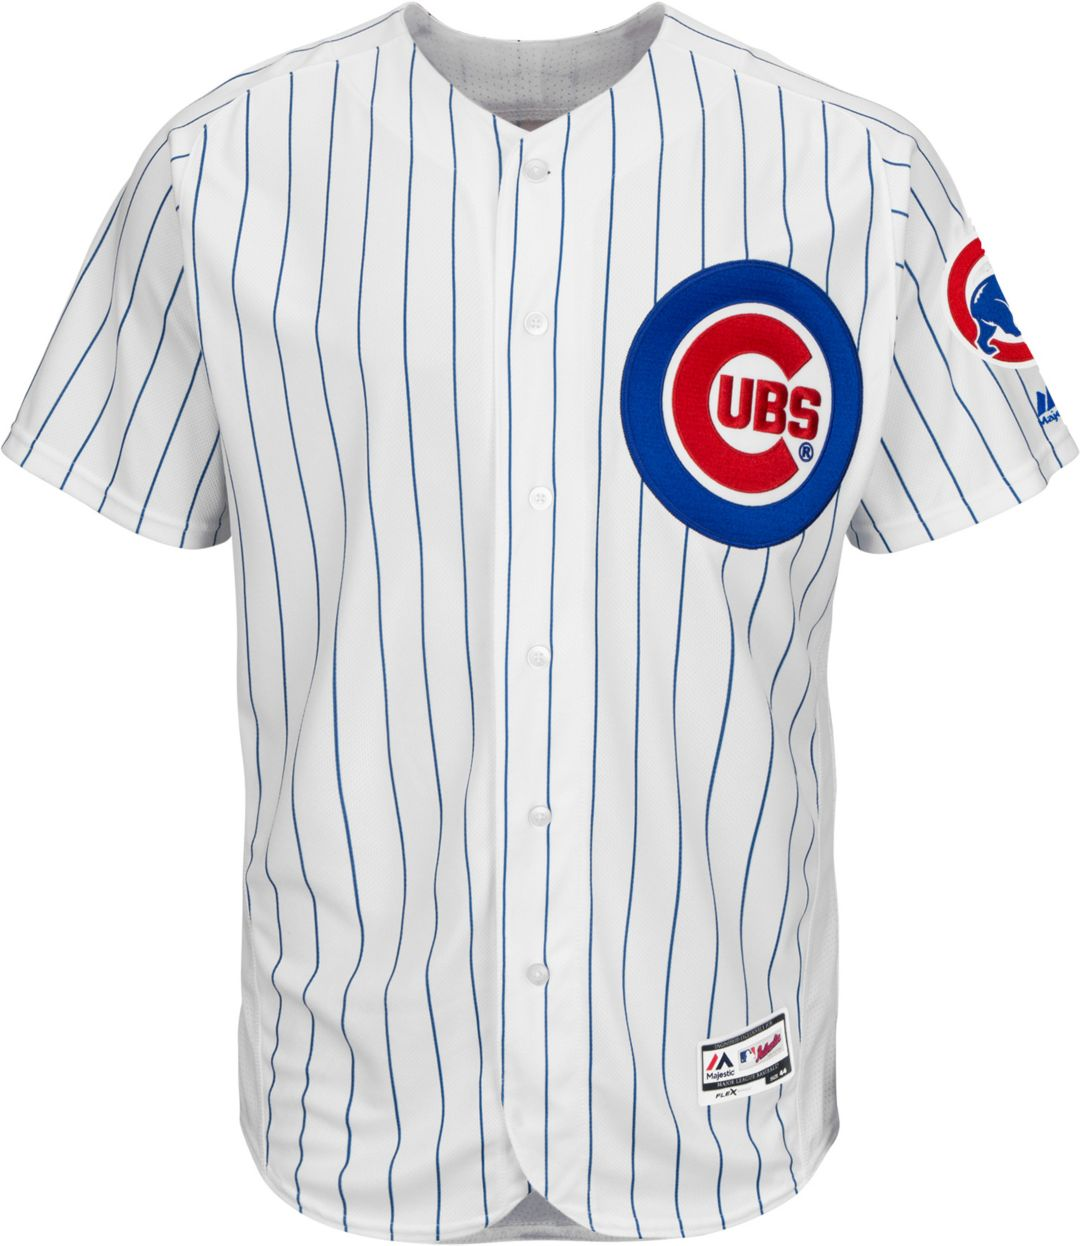 cheaper b89ed 34241 Majestic Men's Authentic Chicago Cubs Jon Lester #34 Home White Flex Base  On-Field Jersey